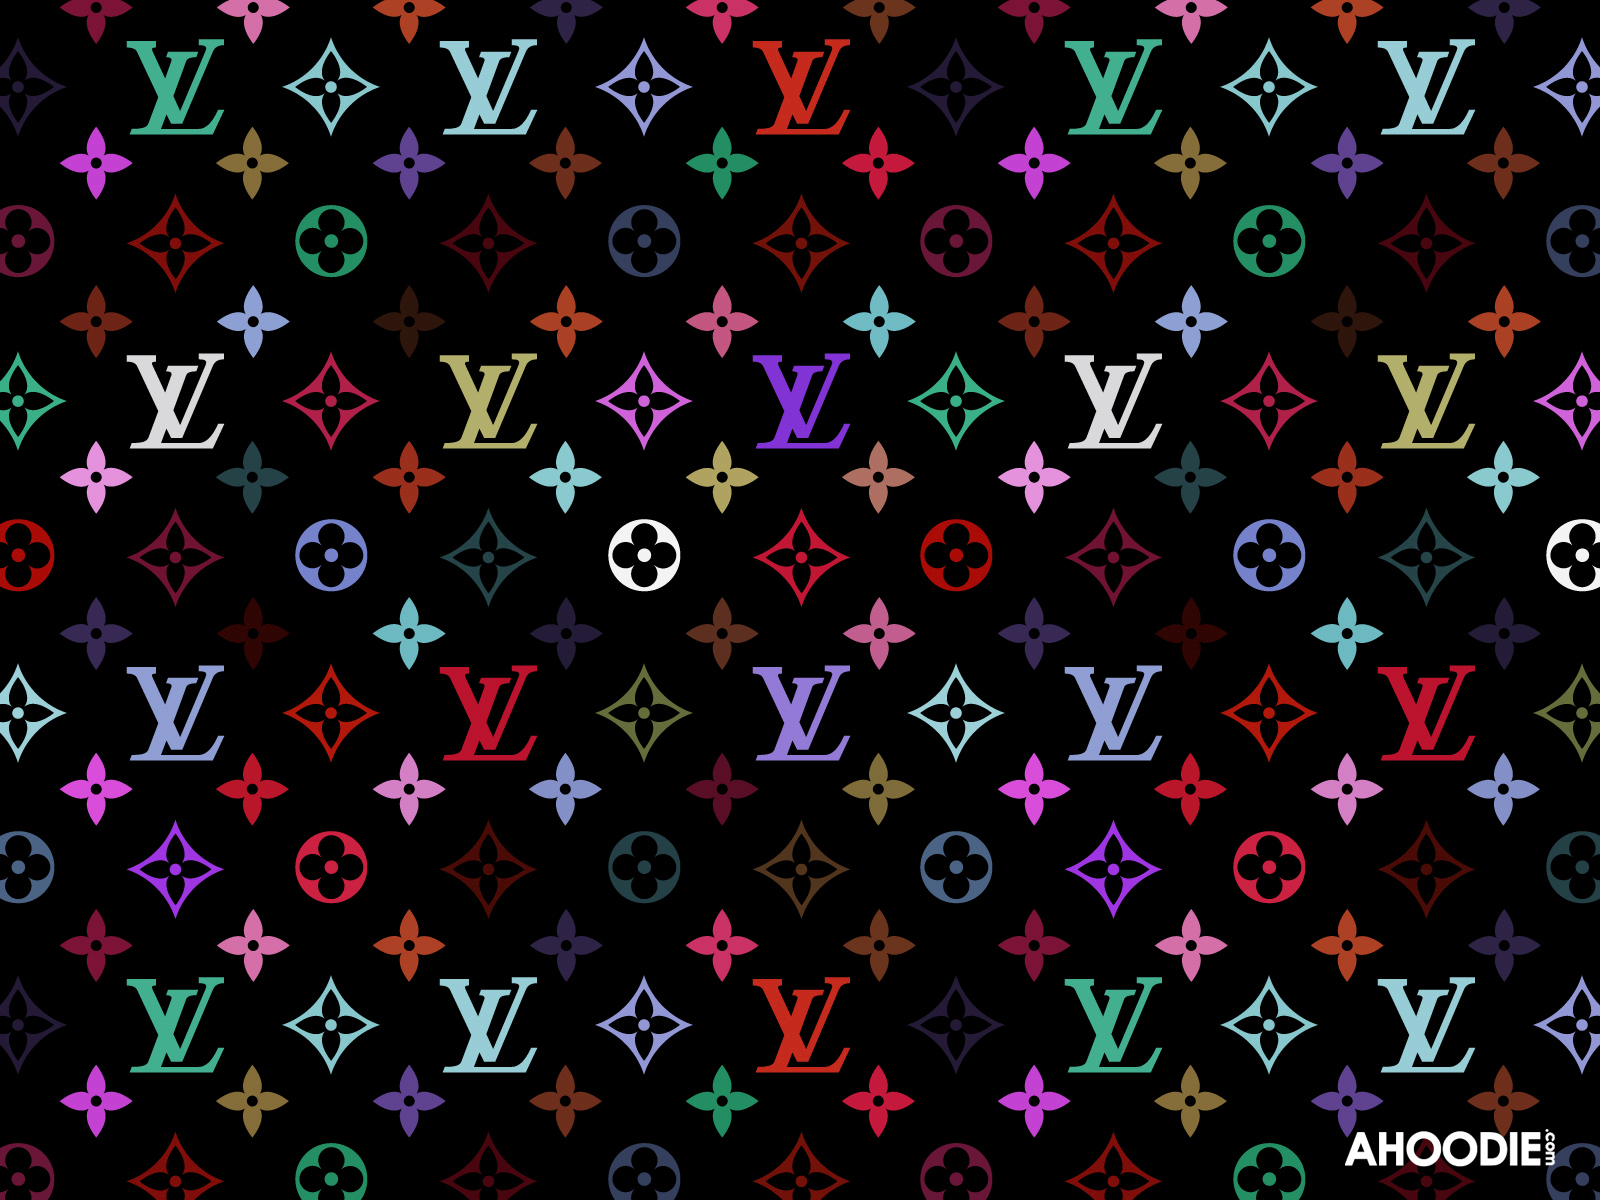 Louis Vuitton Lv Multi Color Wallpaper2 16001200 With Resolutions 1600x1200